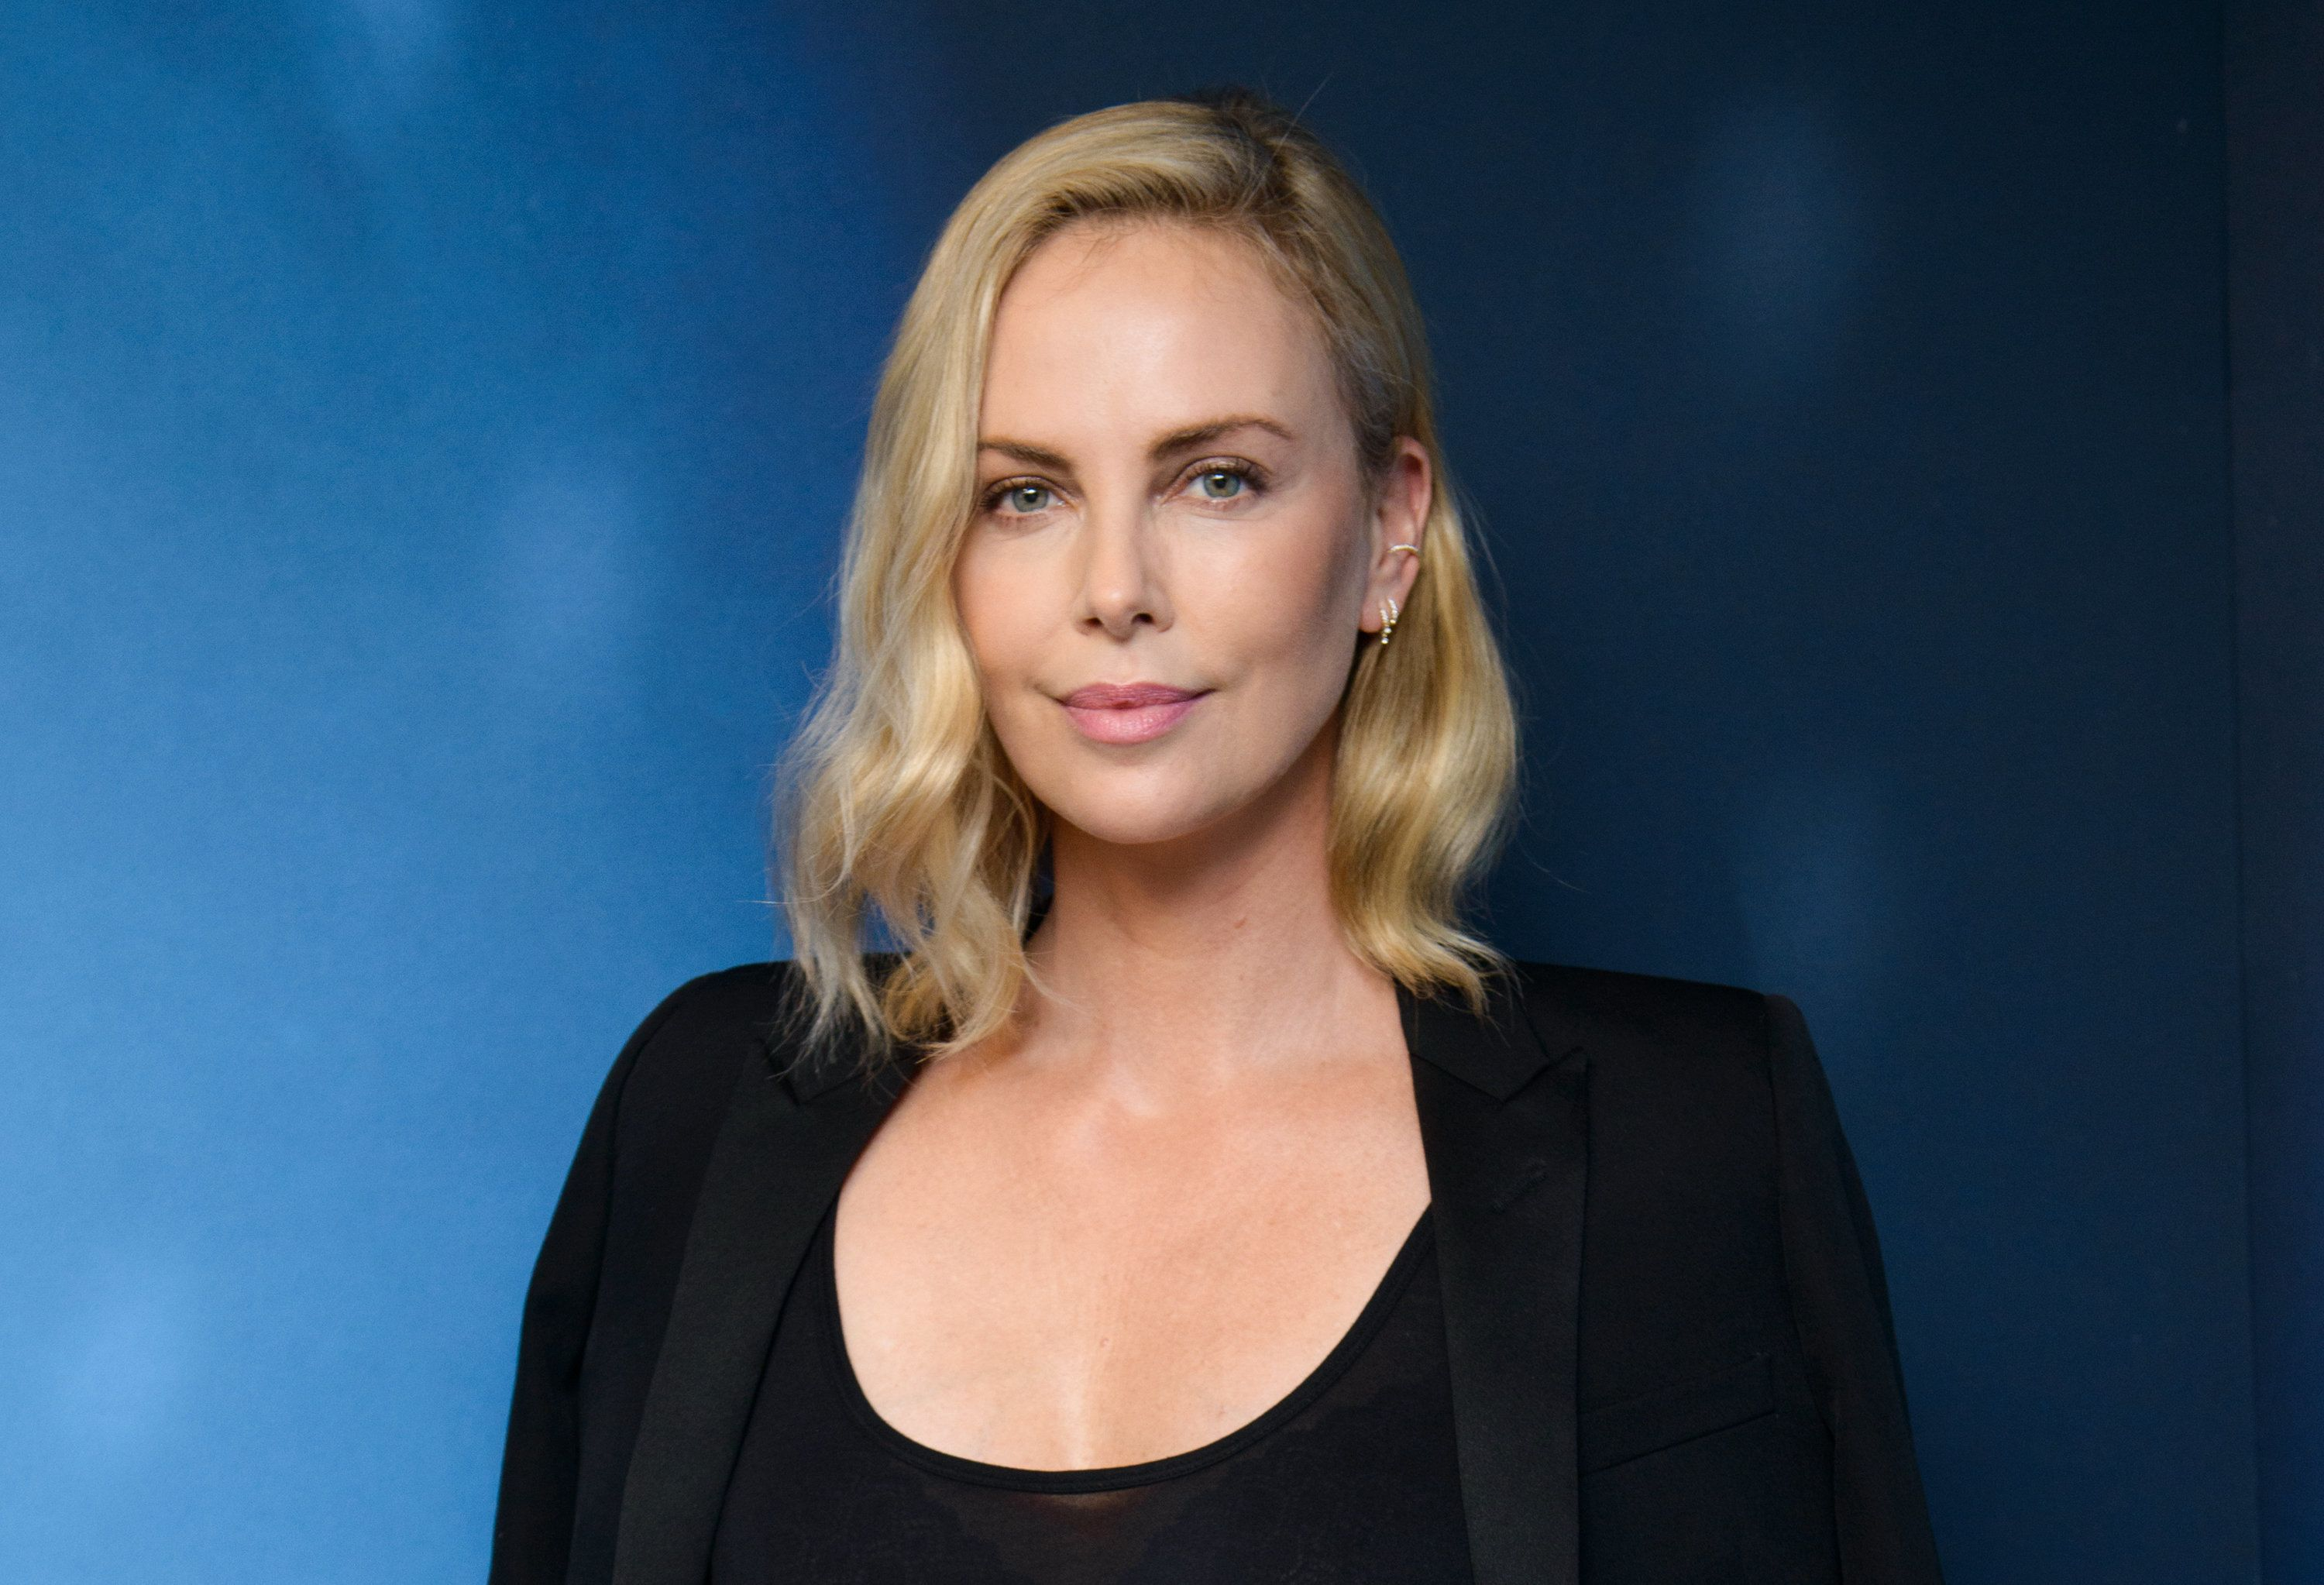 NEW YORK, NY - JULY 19:  Actress Charlize Theron visits '80s on 8' at the SiriusXM Studios on July 19, 2017 in New York City.  (Photo by Noam Galai/Getty Images)